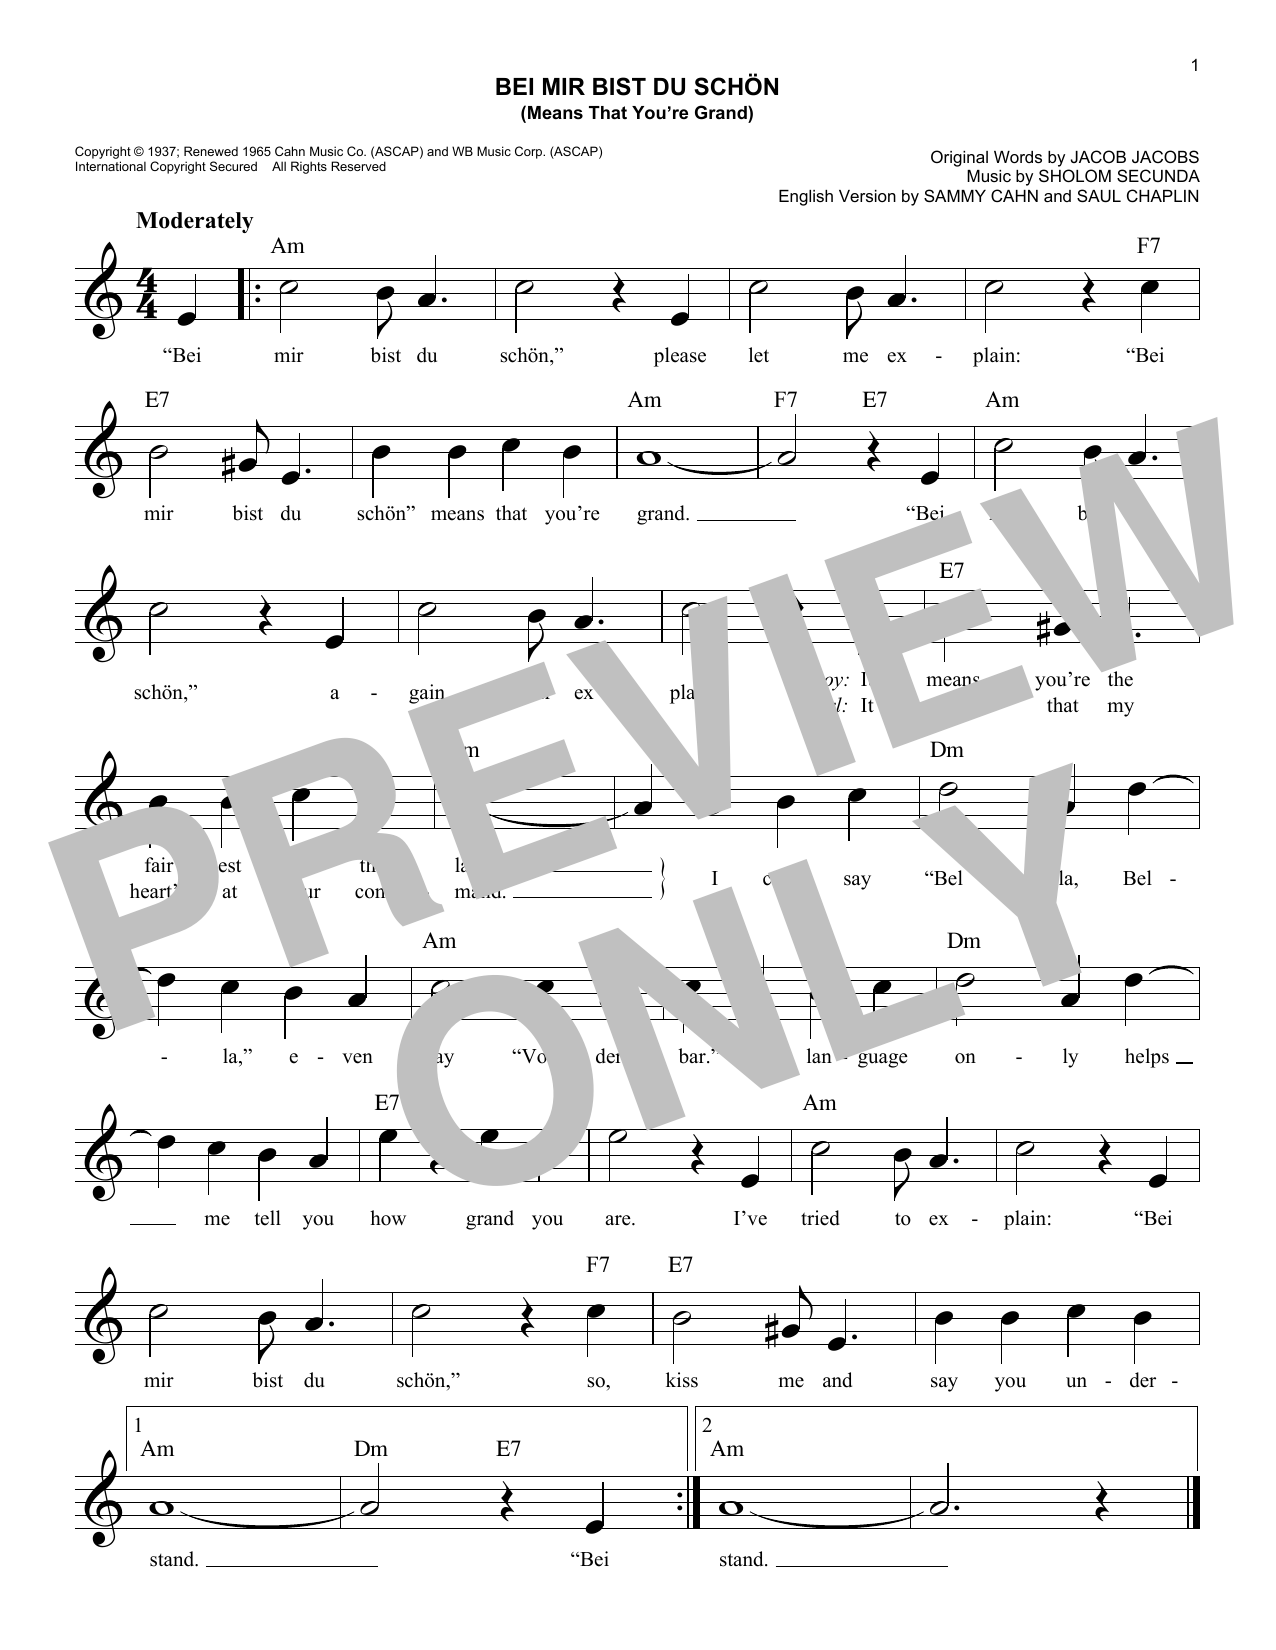 Louis Prima & Keely Smith Bei Mir Bist Du Schon (Means That You're Grand) sheet music notes and chords. Download Printable PDF.